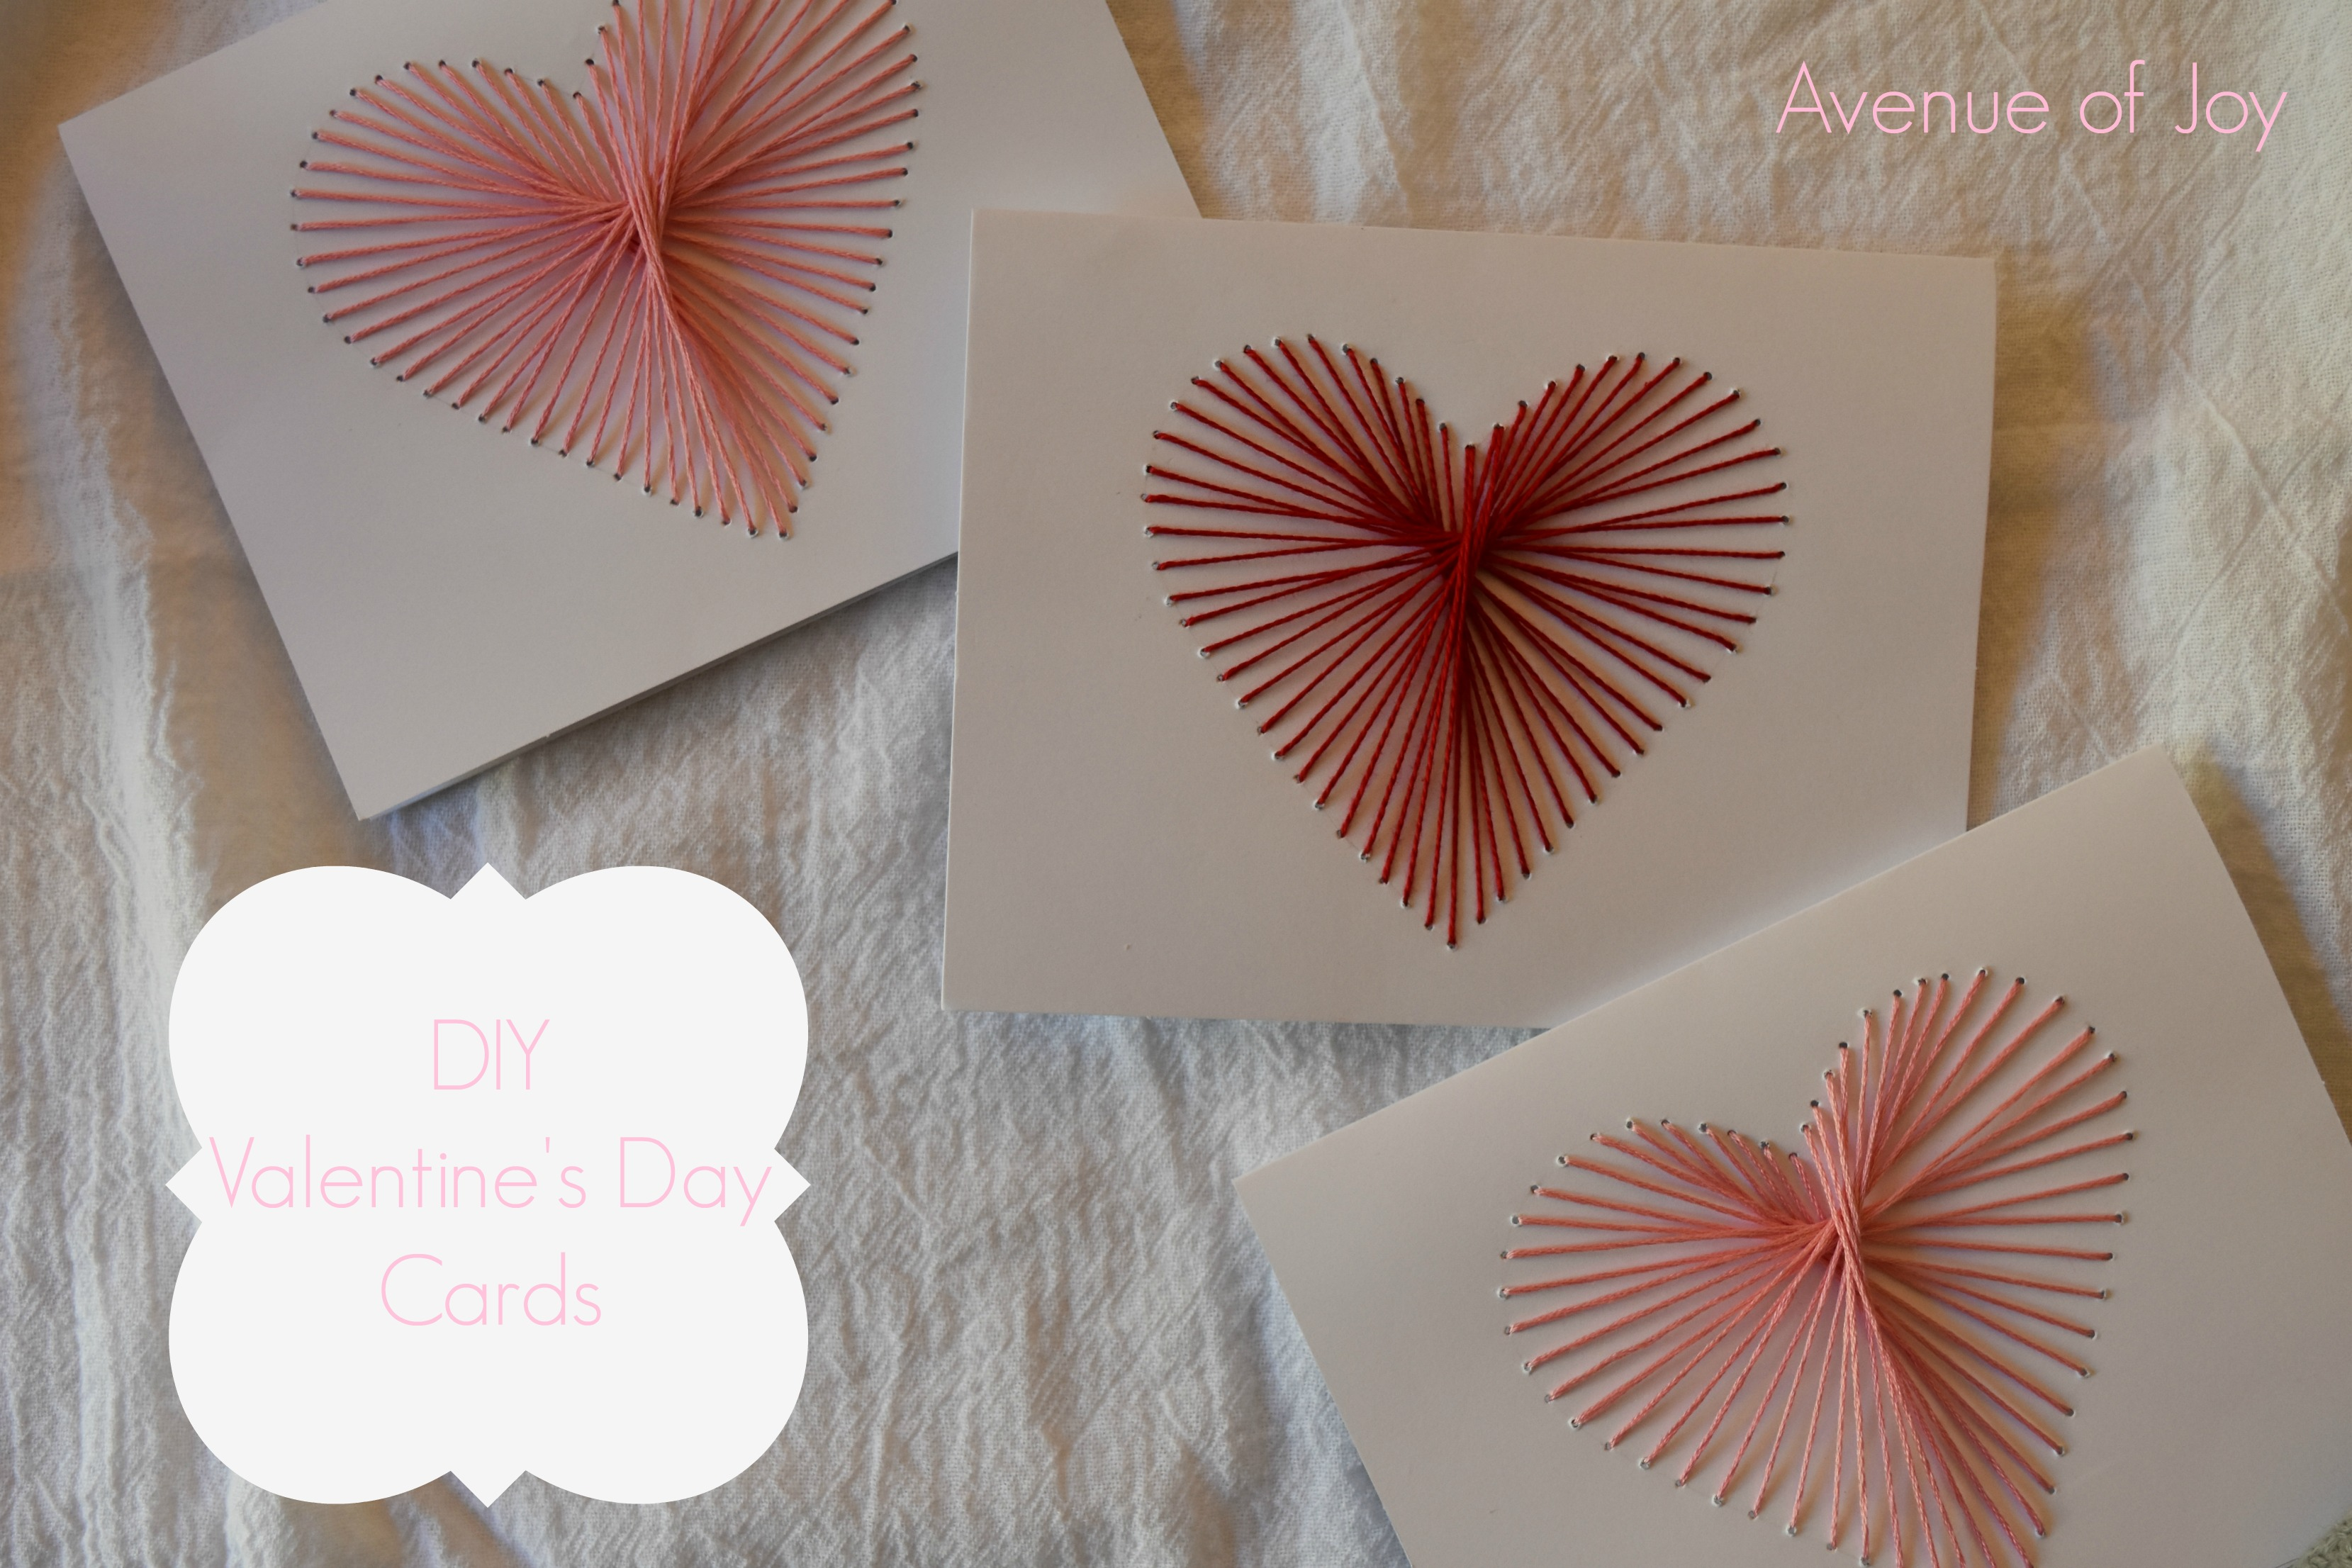 Diy Valentine S Day Cards With Embroidery String Avenue Of Joy